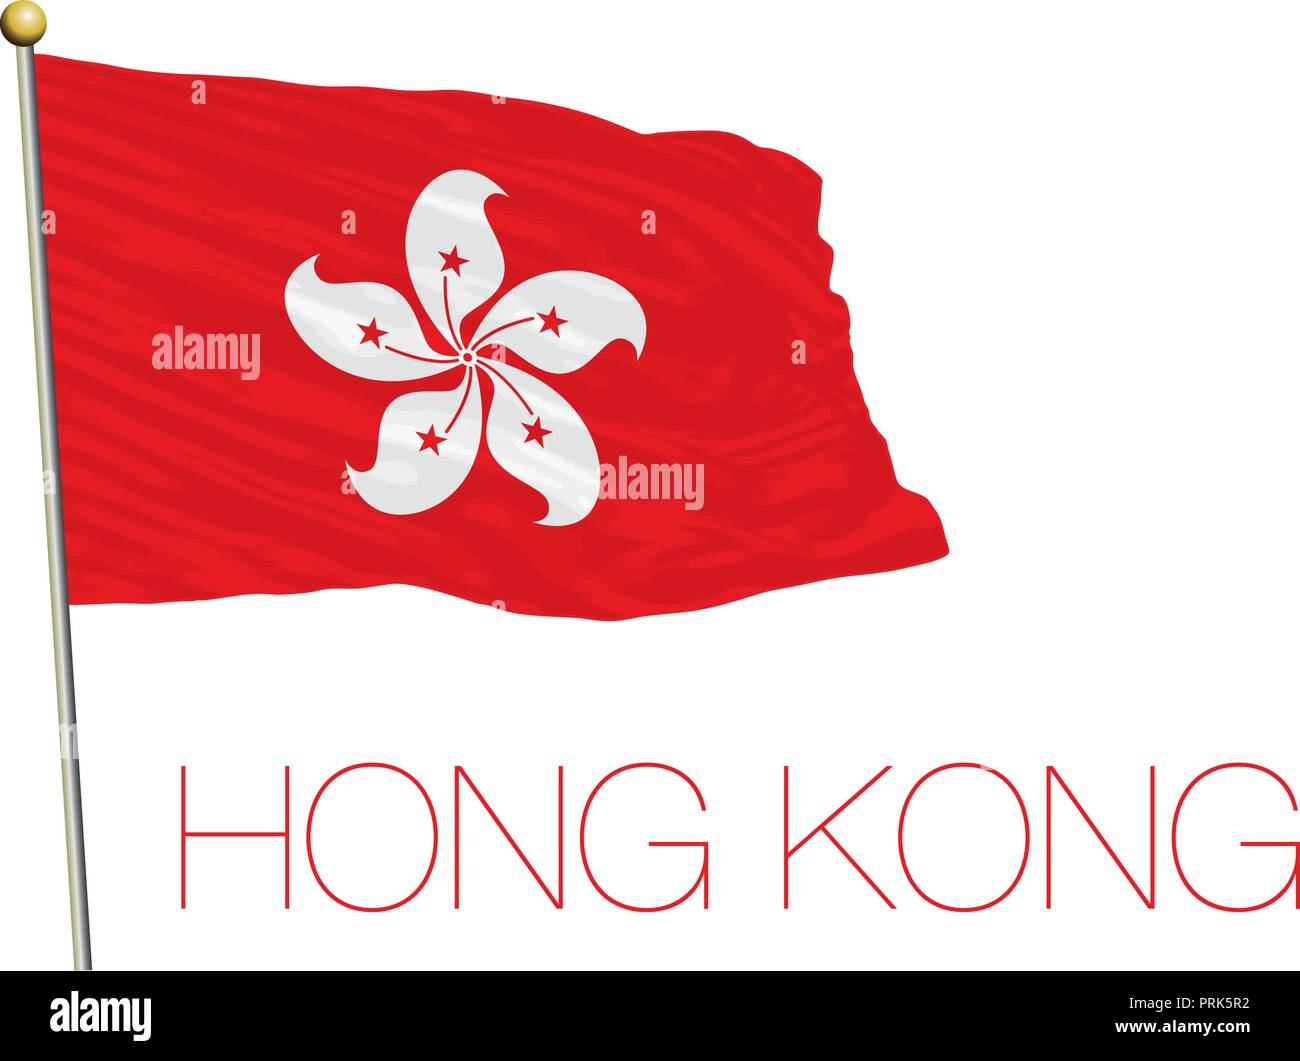 Hong Kong official flag, vector illustration - Stock Vector